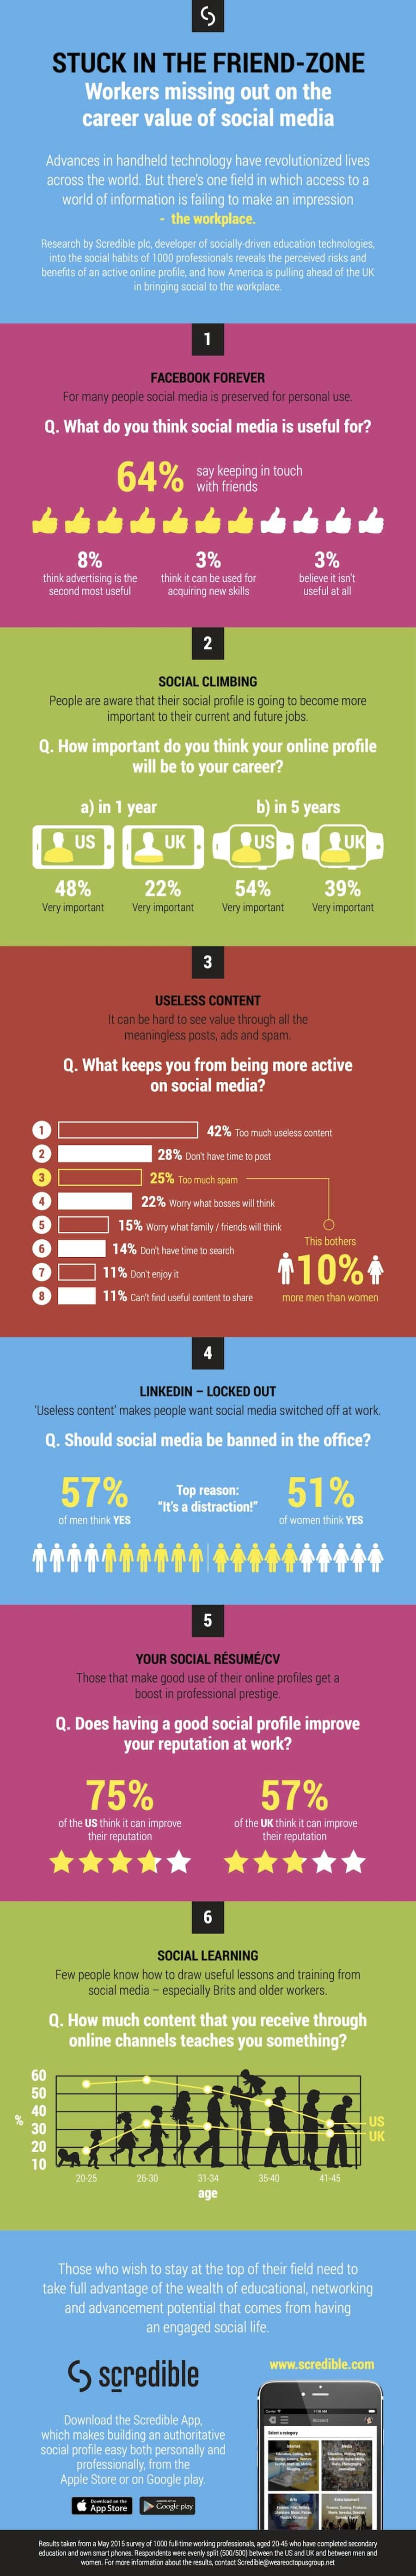 Infographic-social-media-survey